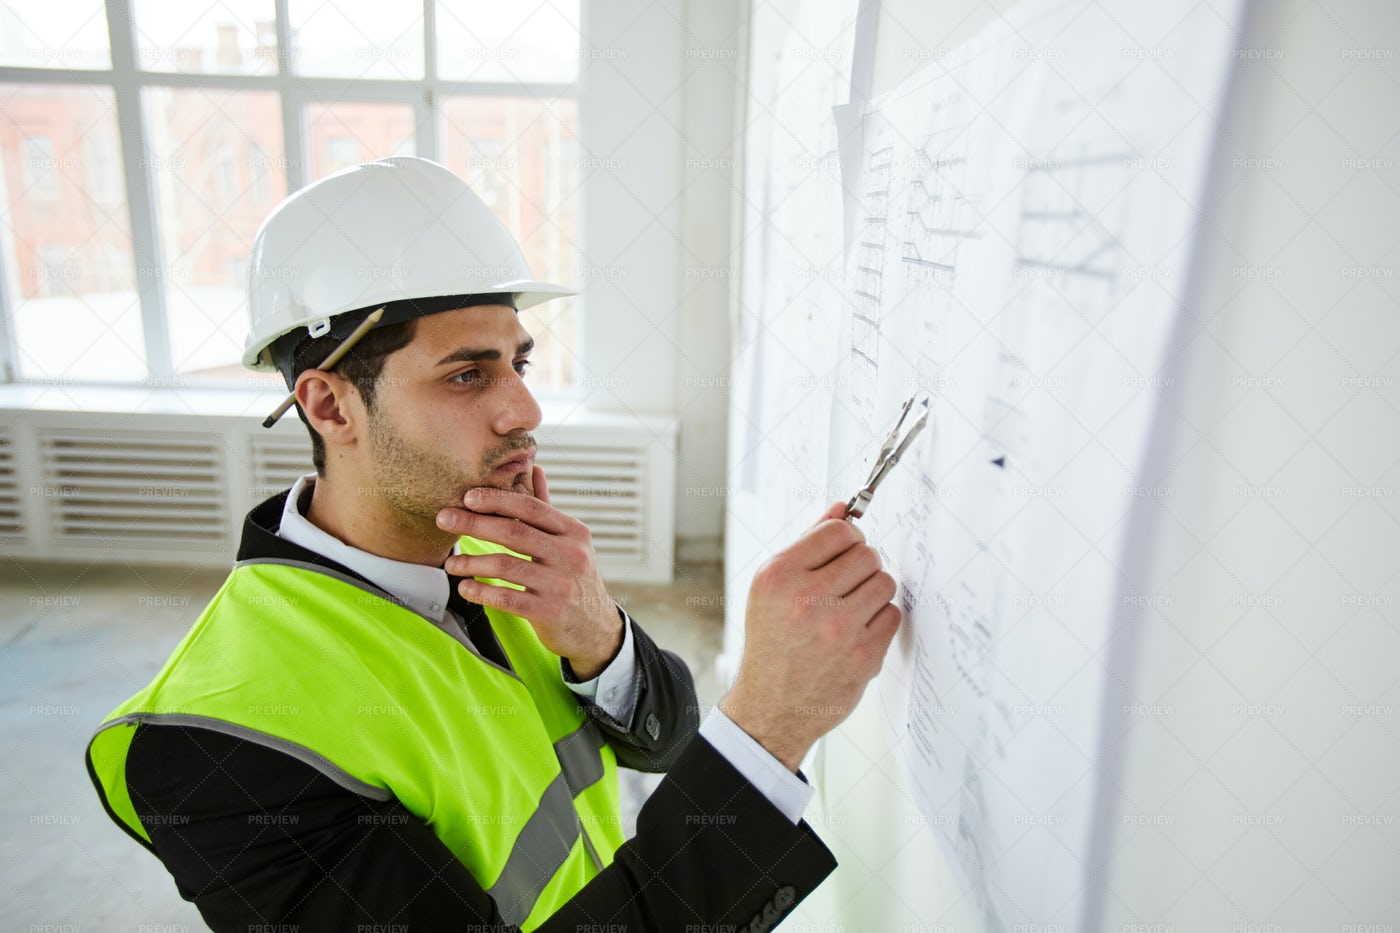 Engineer Thinking Over Plans: Stock Photos